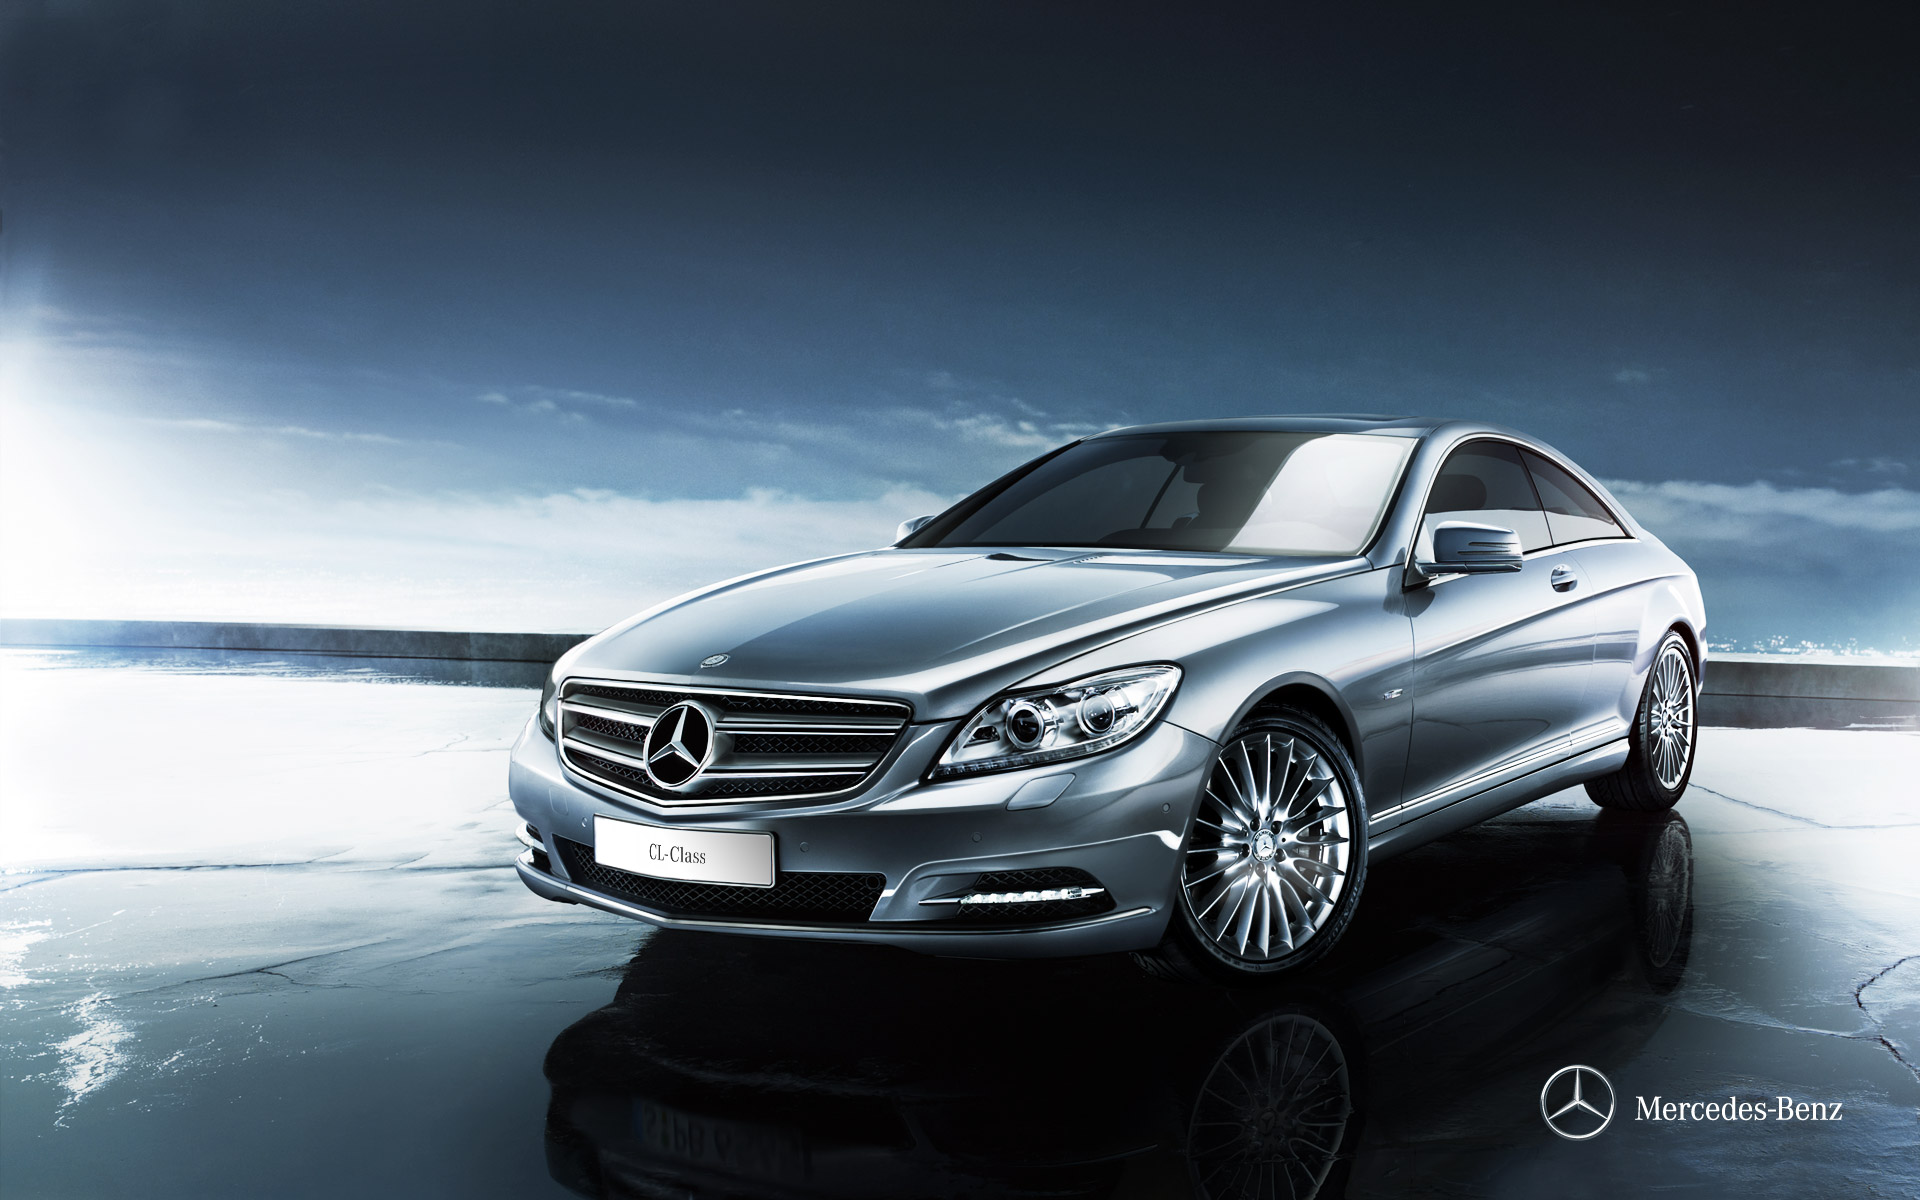 Car pictures list for mercedes benz cl class 2012 cl 65 for Mercedes benz cl coupe